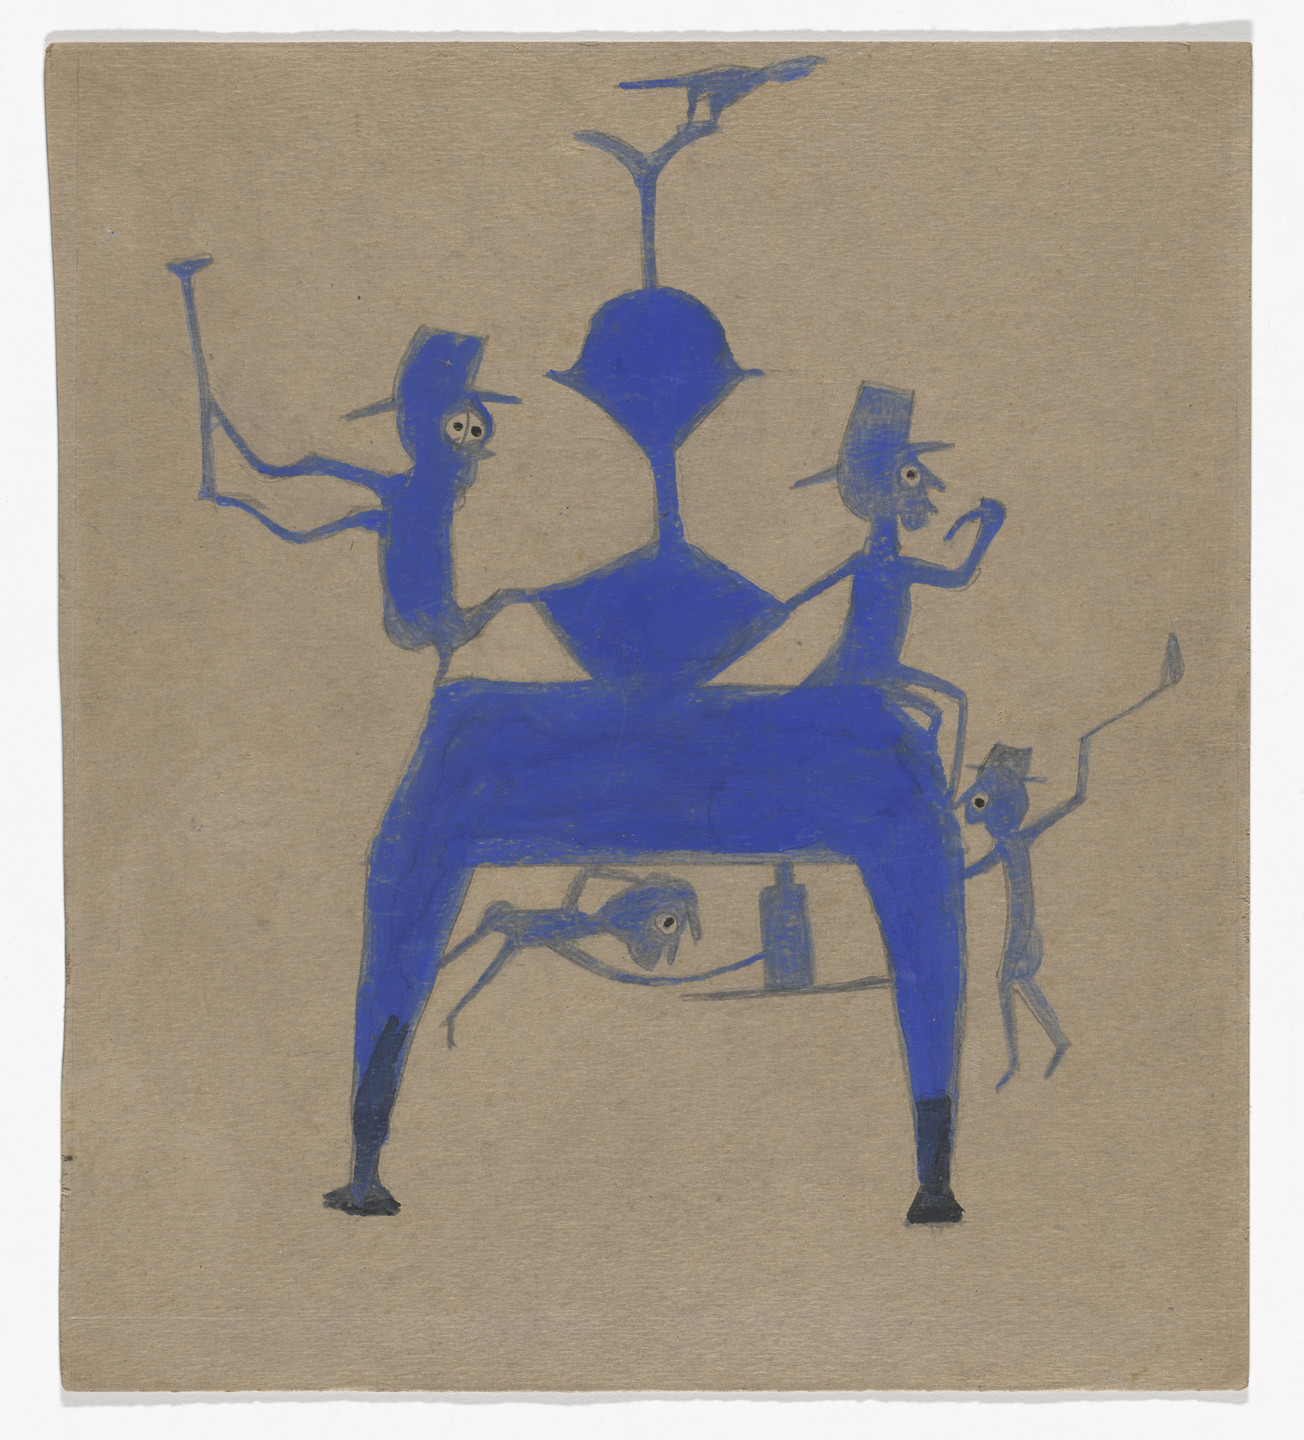 Bill Traylor. Figures on Blue Construction. c. 1939–42